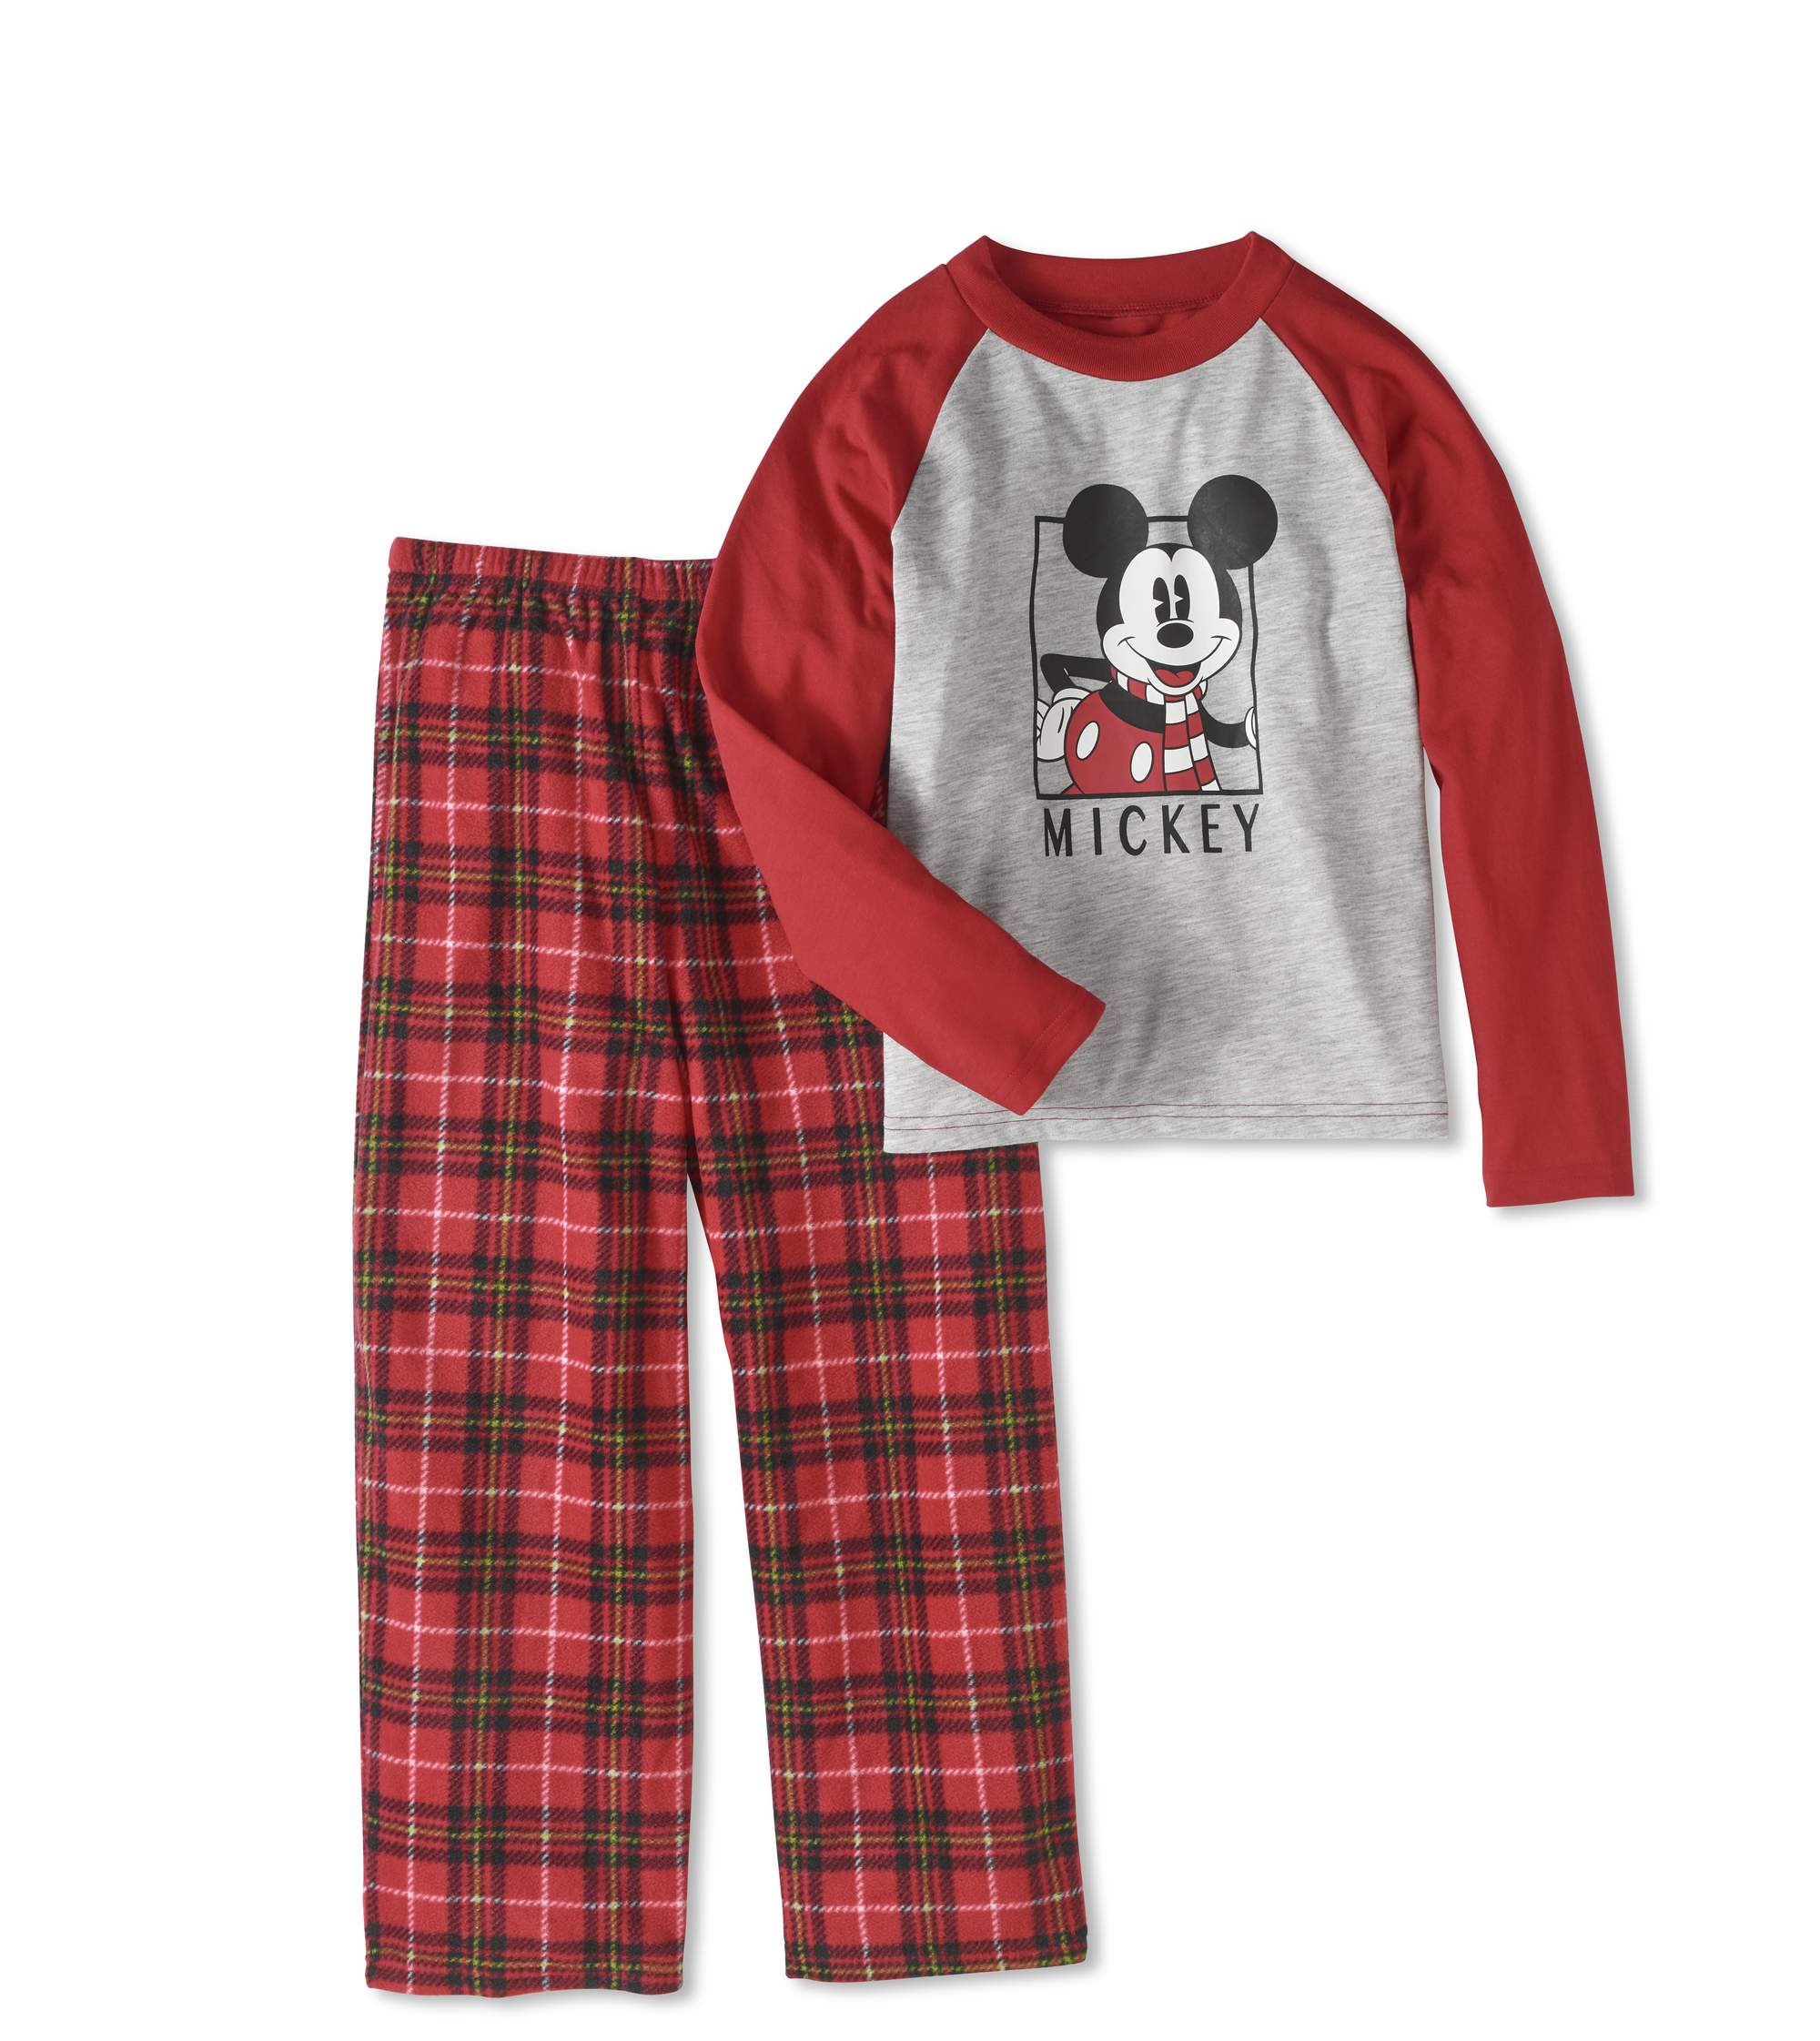 Mickey Mouse Toddler Boy 2pc Pajamas Set